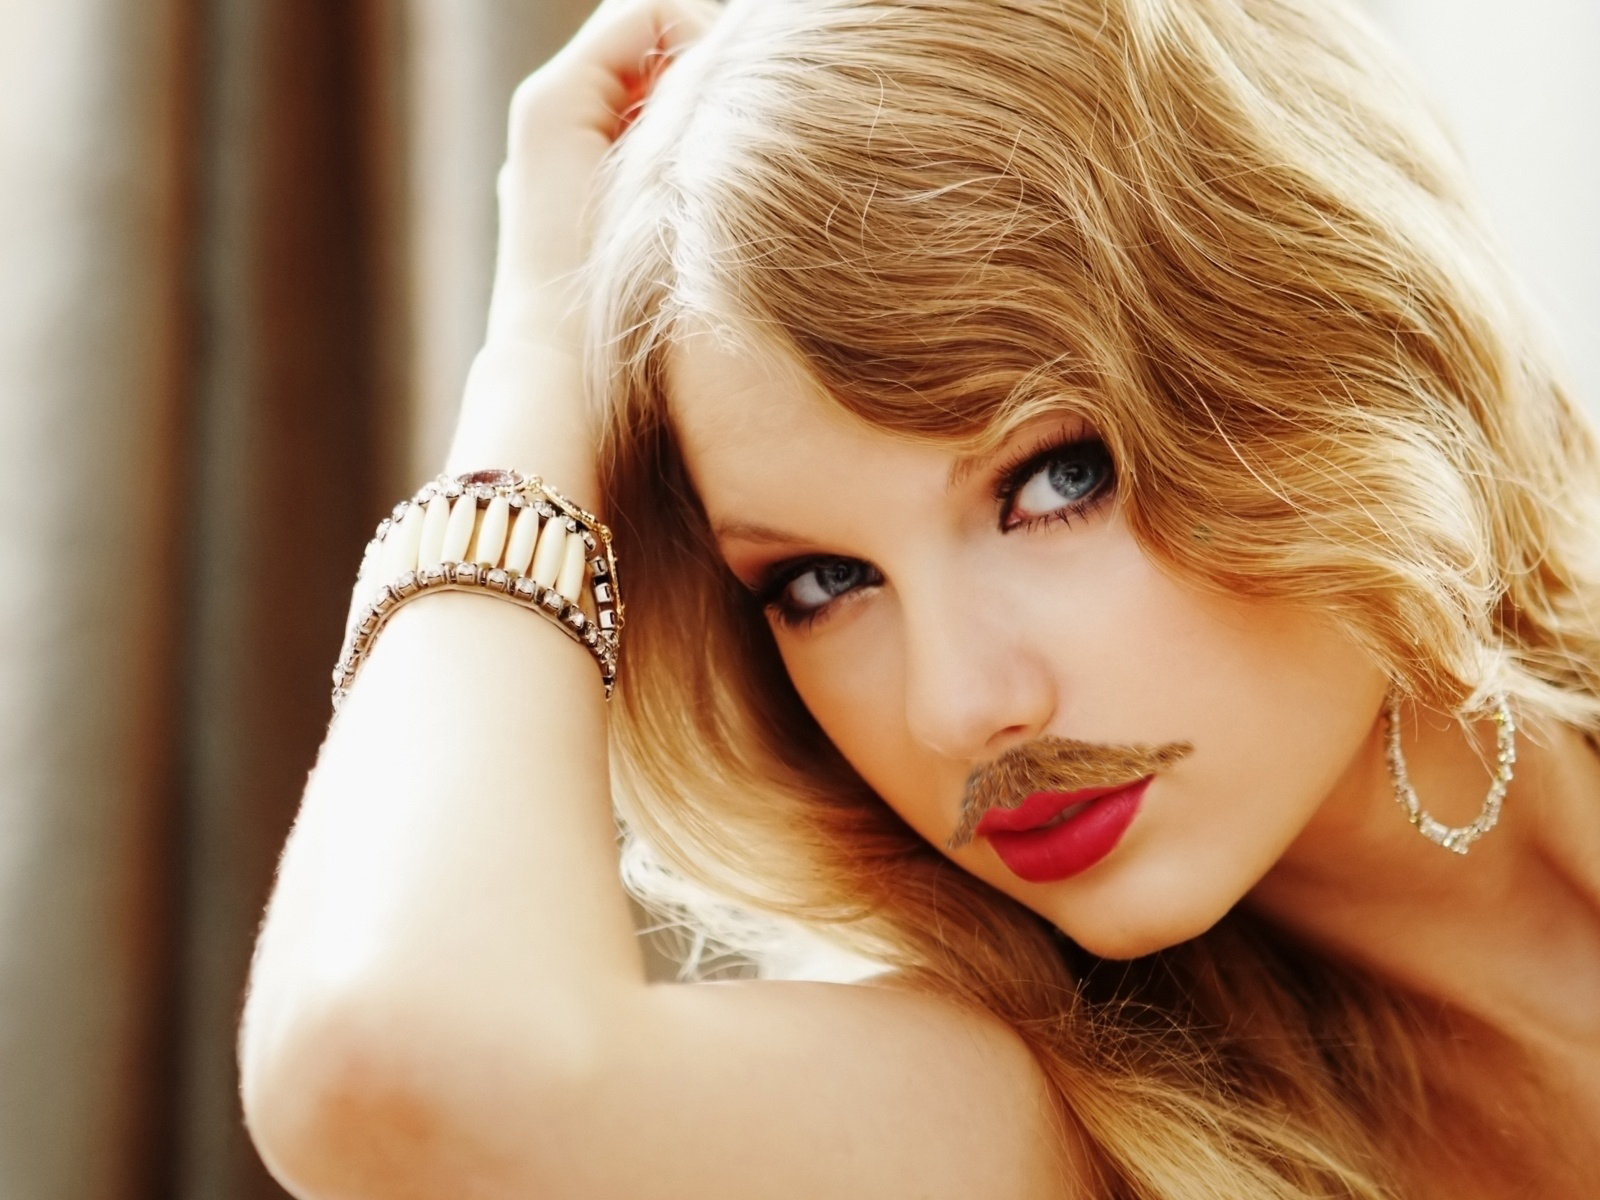 Taylor Swift with a Mustache